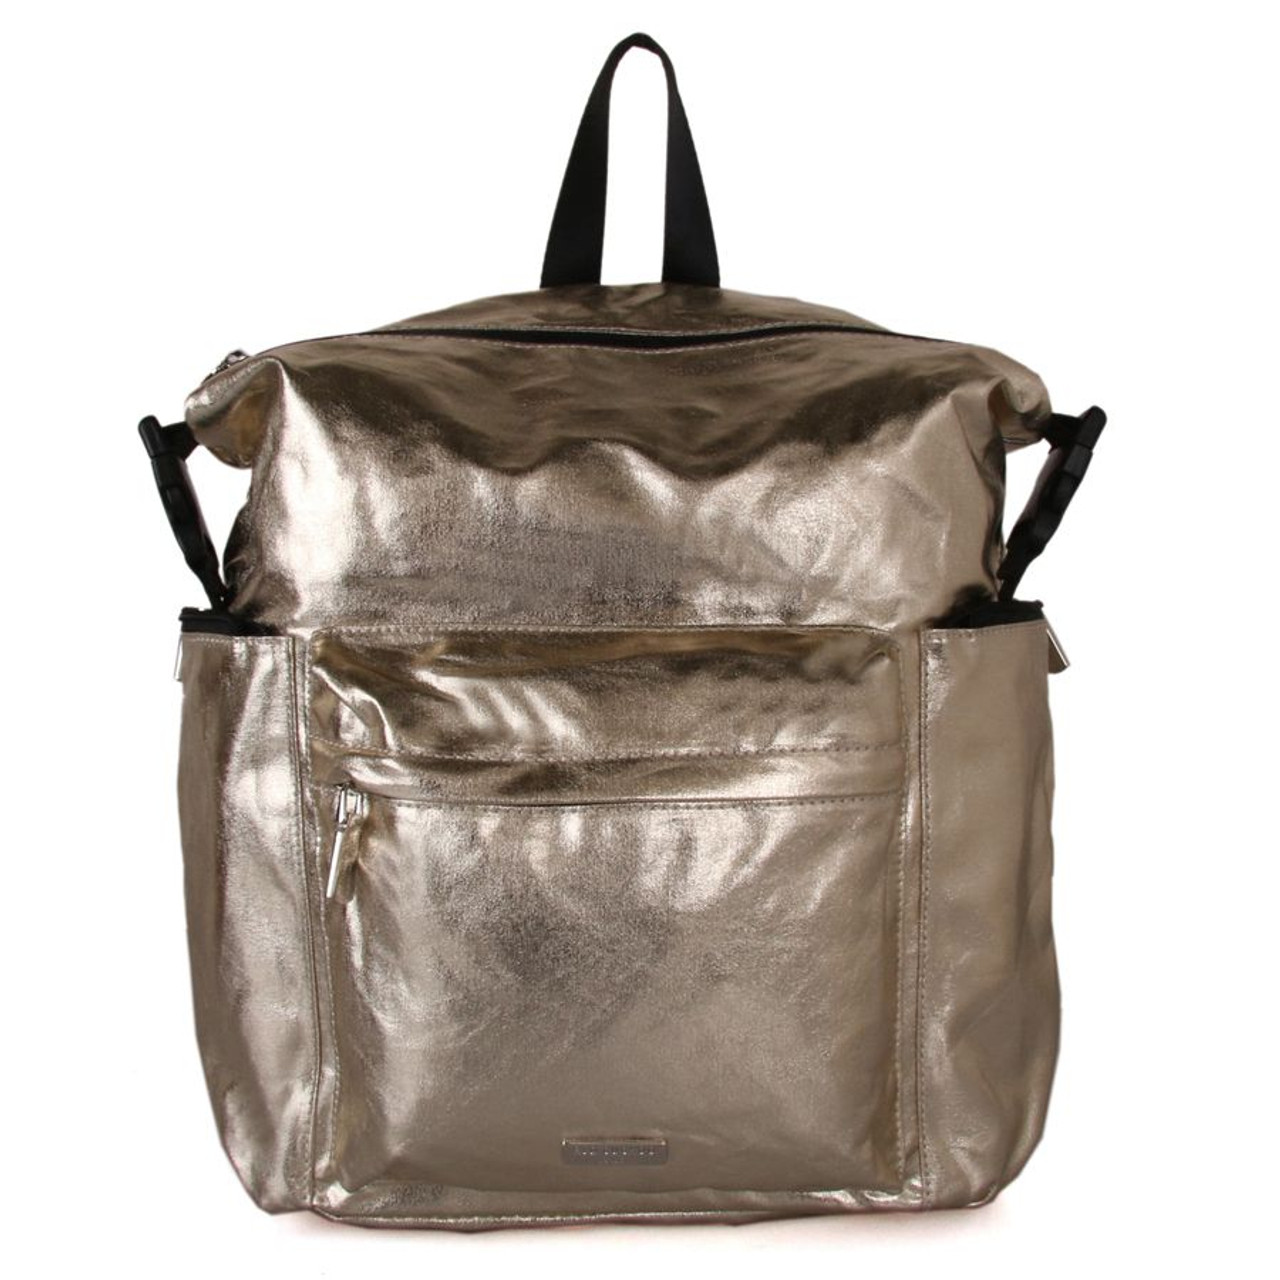 b6efe00bfc9 Red Cuckoo Metallic Gold Backpack - Itsy Bitsy Boutique